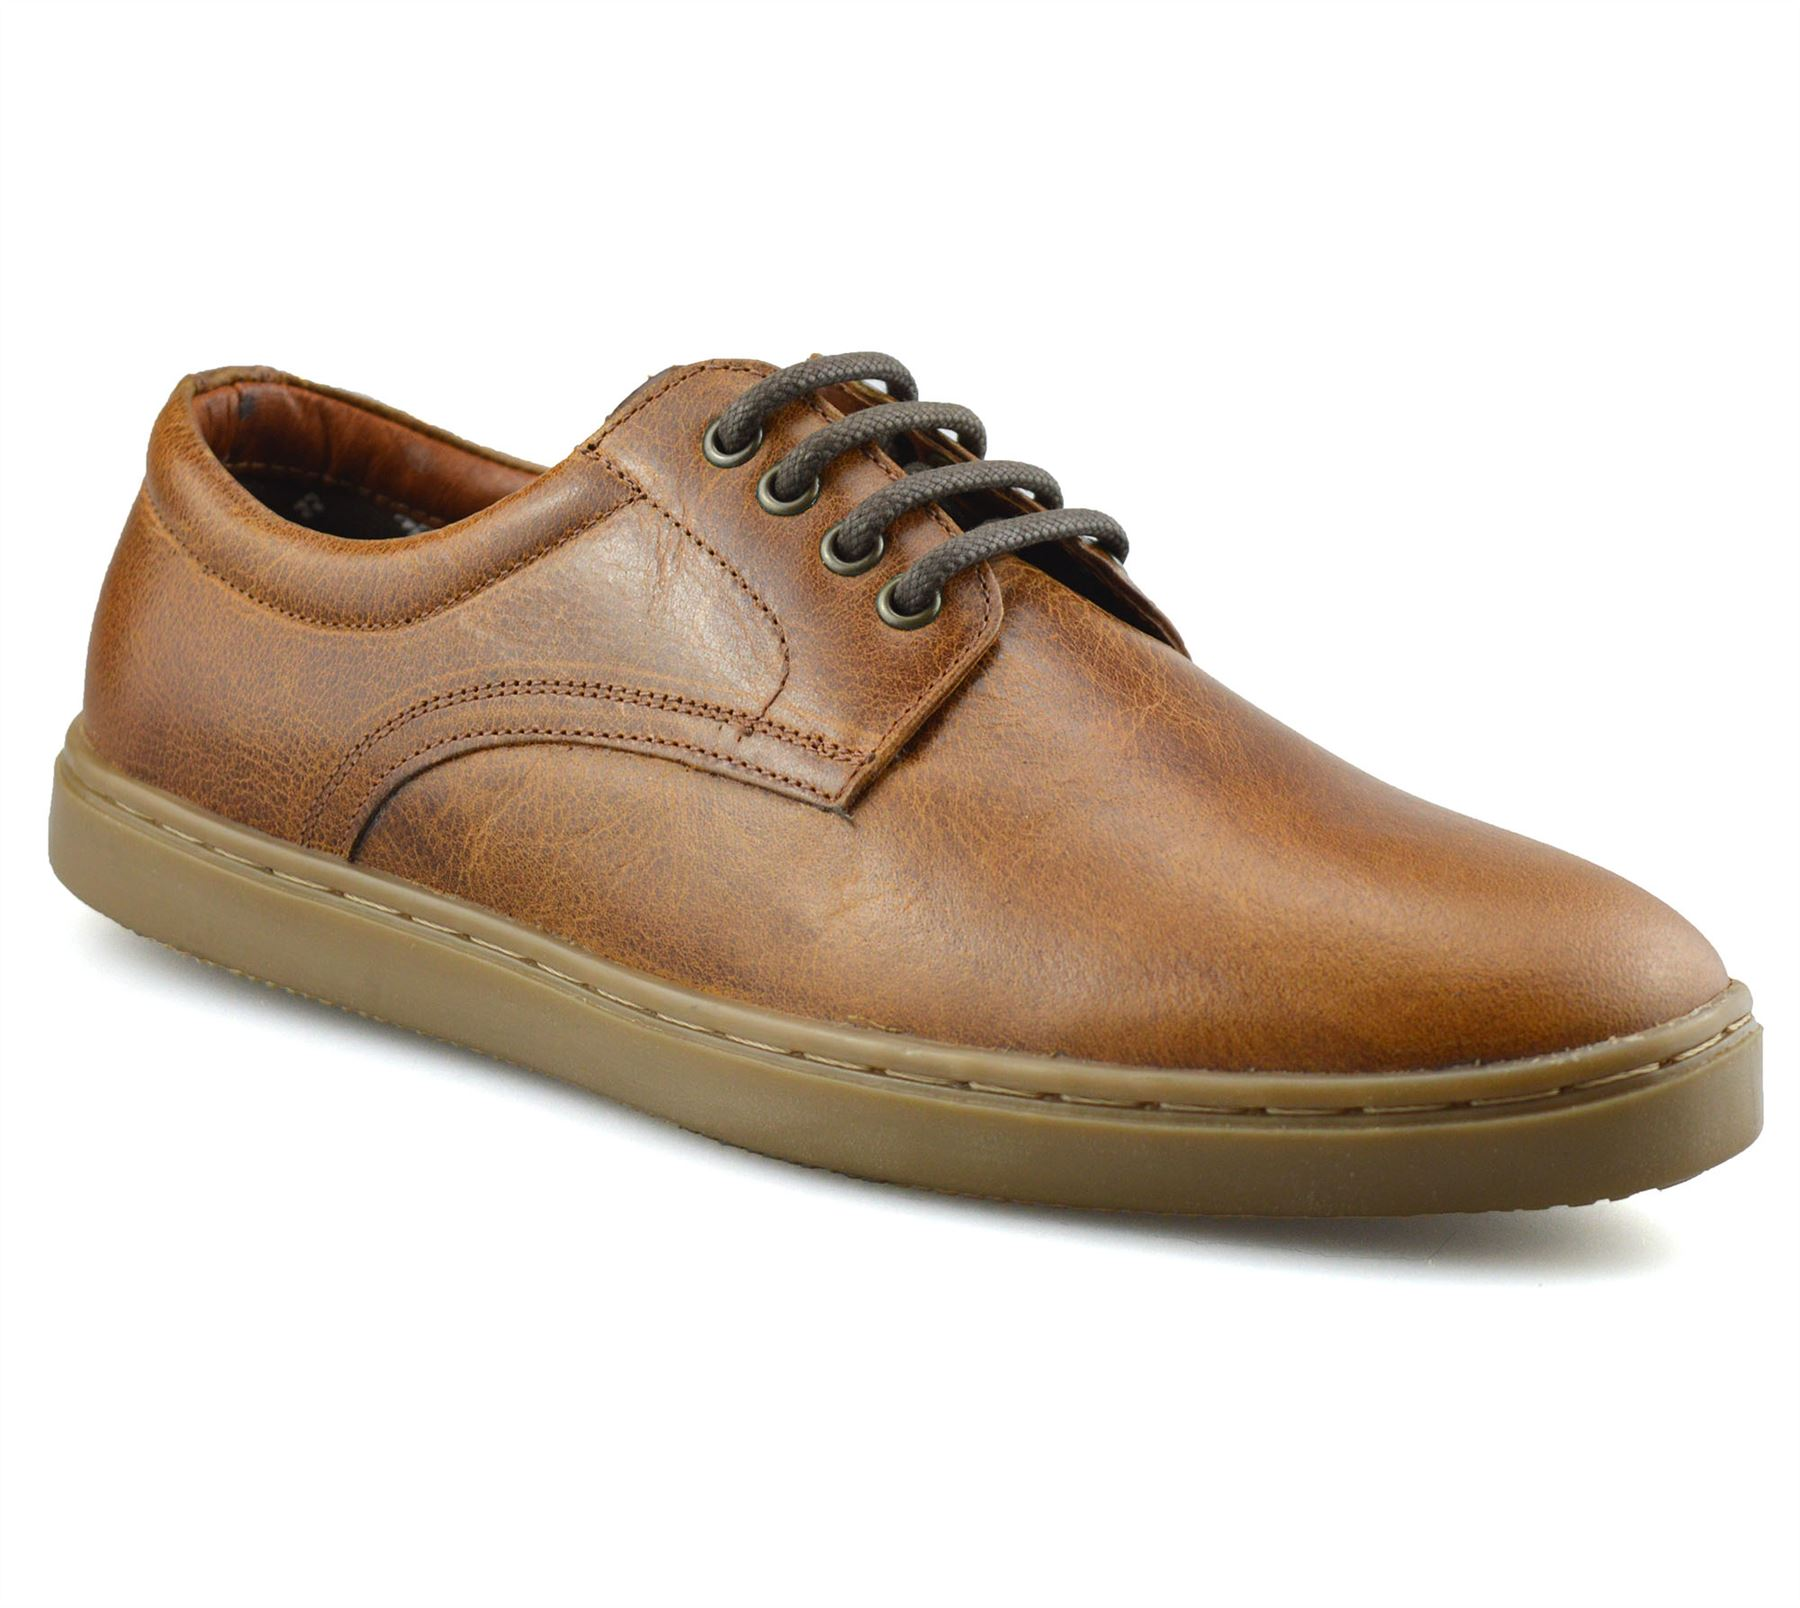 Mens Red Tape Leather Casual Smart Boat Deck Mocassin Work Lace Up Shoes Size